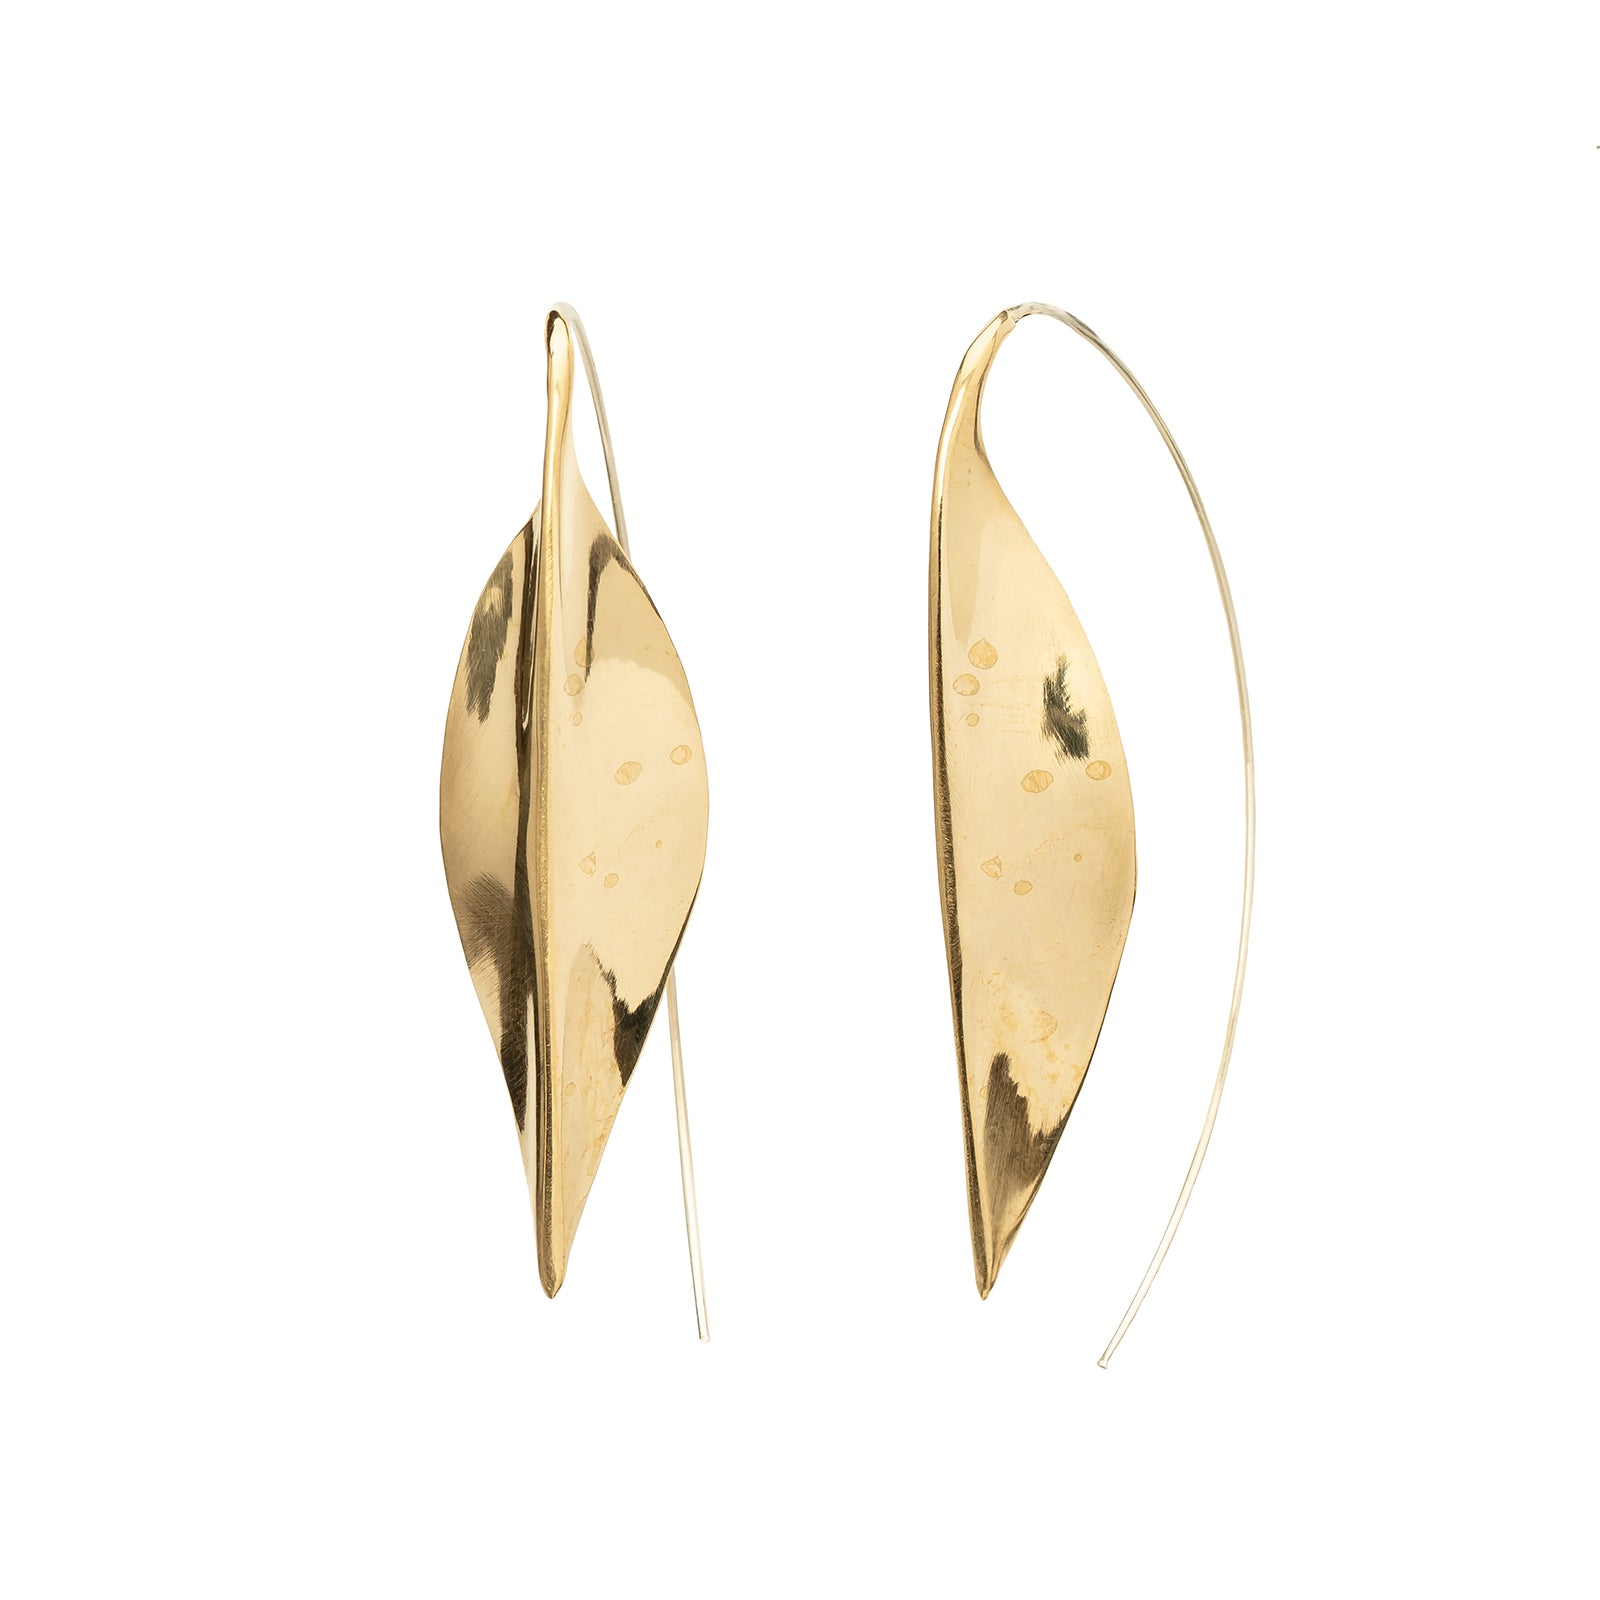 Ariana Boussard-Reifel Ishtar Earrings - Brass - Earrings - Broken English Jewelry